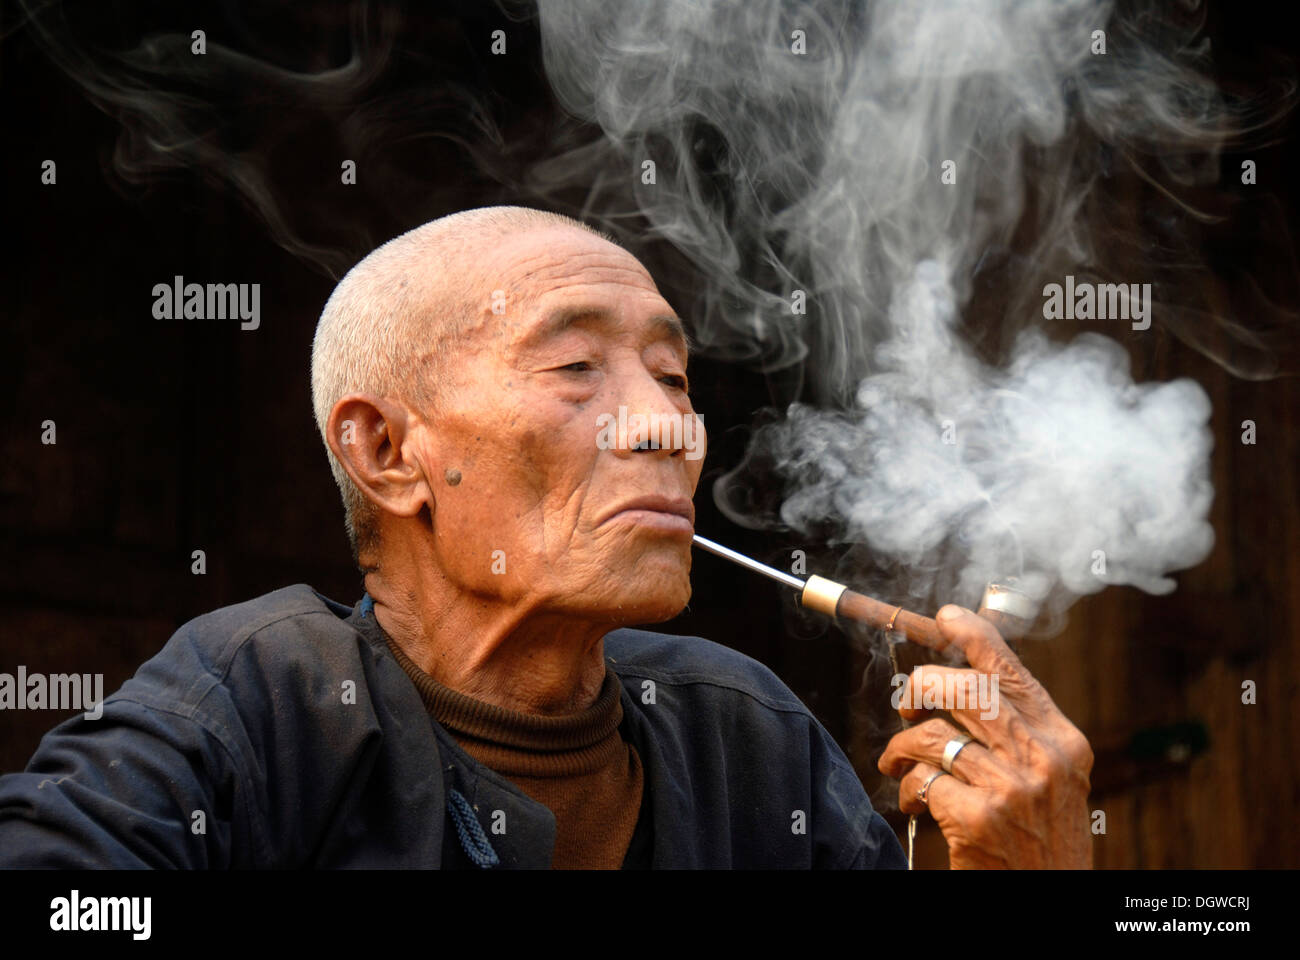 Male smoker, portrait, indulgence, old man of the Mouchi ethnic group smoking a pipe, smoke lingering in the air - Stock Image